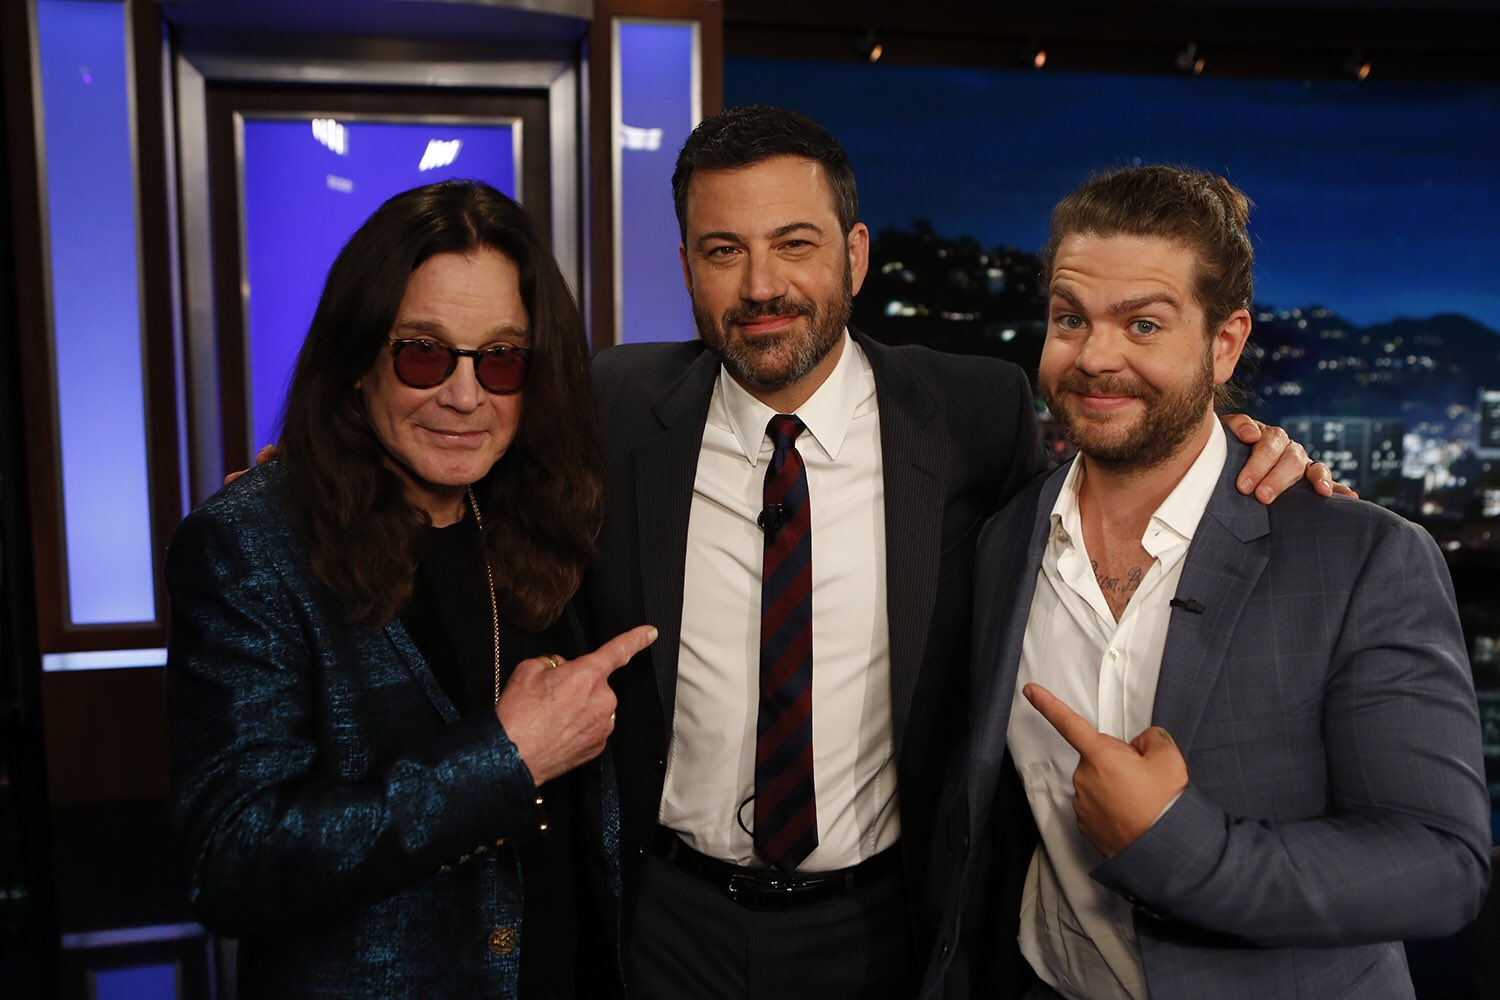 Catch @JackOsbourne and I on @JimmyKimmelLive tonight talking about Ozzy & Jack's World Detour (@OzWorldDetour) https://t.co/jrw1FGEP1P